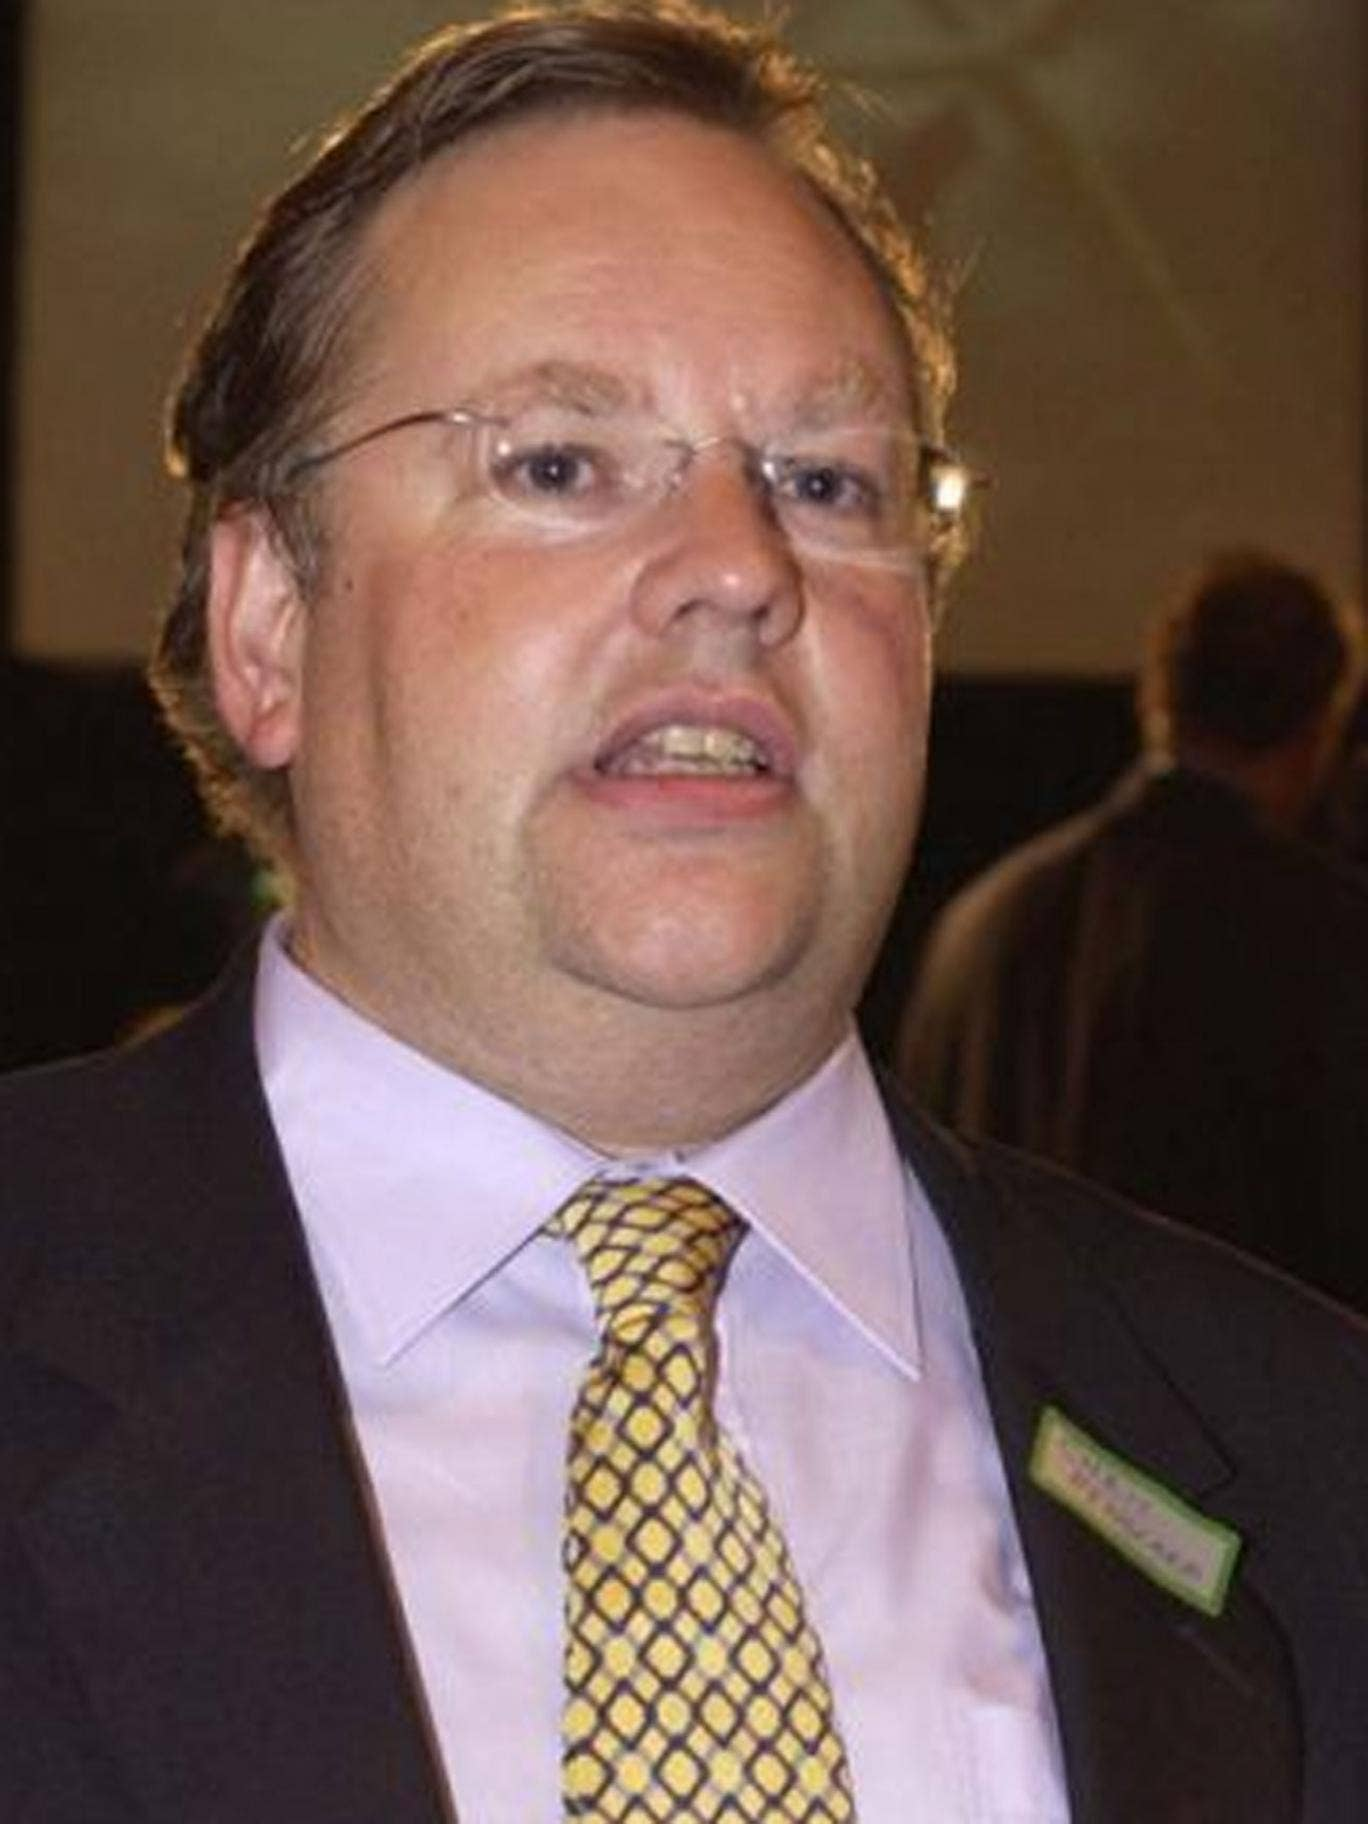 Lord Rennard played a pivotal role in Nick Clegg's rise but now might reveal the sexual misconduct allegations engulfing the peer